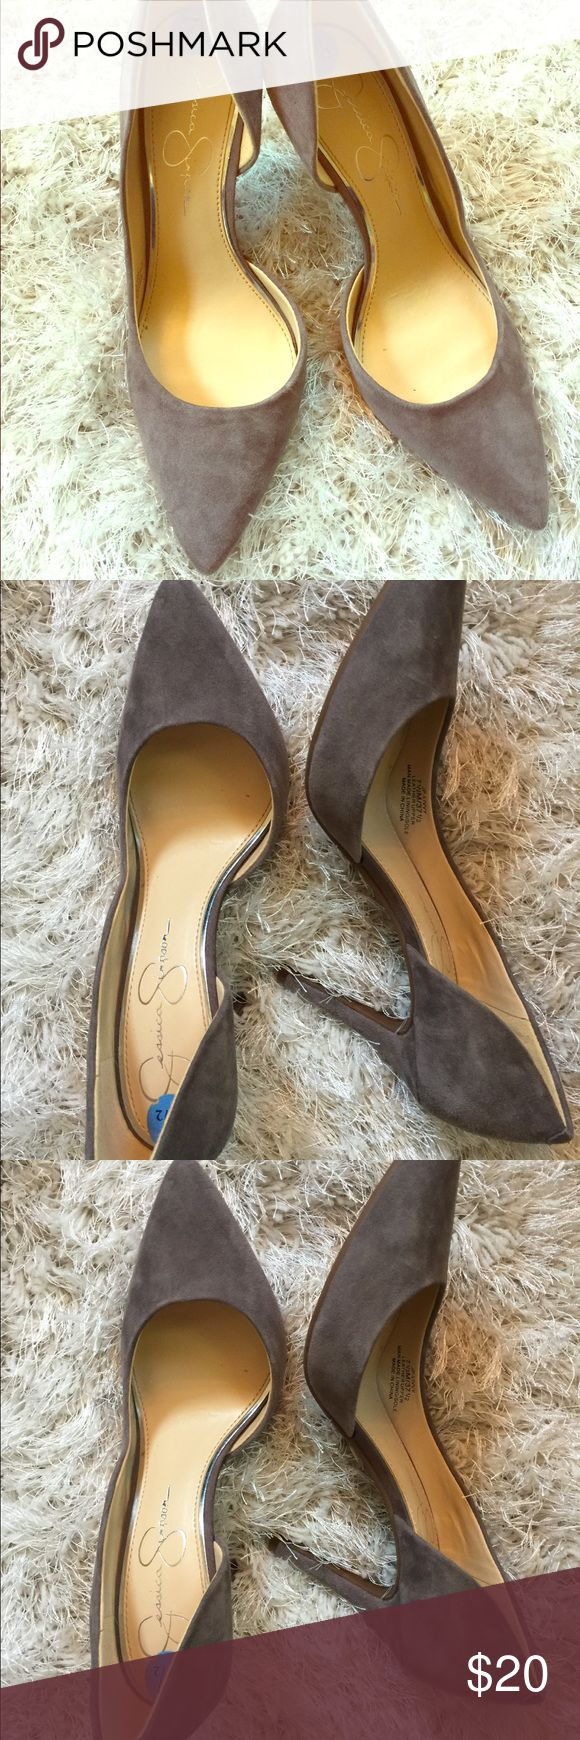 Grey Suede Jessica Simpson Pumps Grey Suede J Simpson Pumps in size 7.5. These are really pretty in person and a great look for fall and winter. Goes with everything and surprisingly comfortable. Worn only one time as you can see by condition of the bottom. Jessica Simpson Shoes Heels